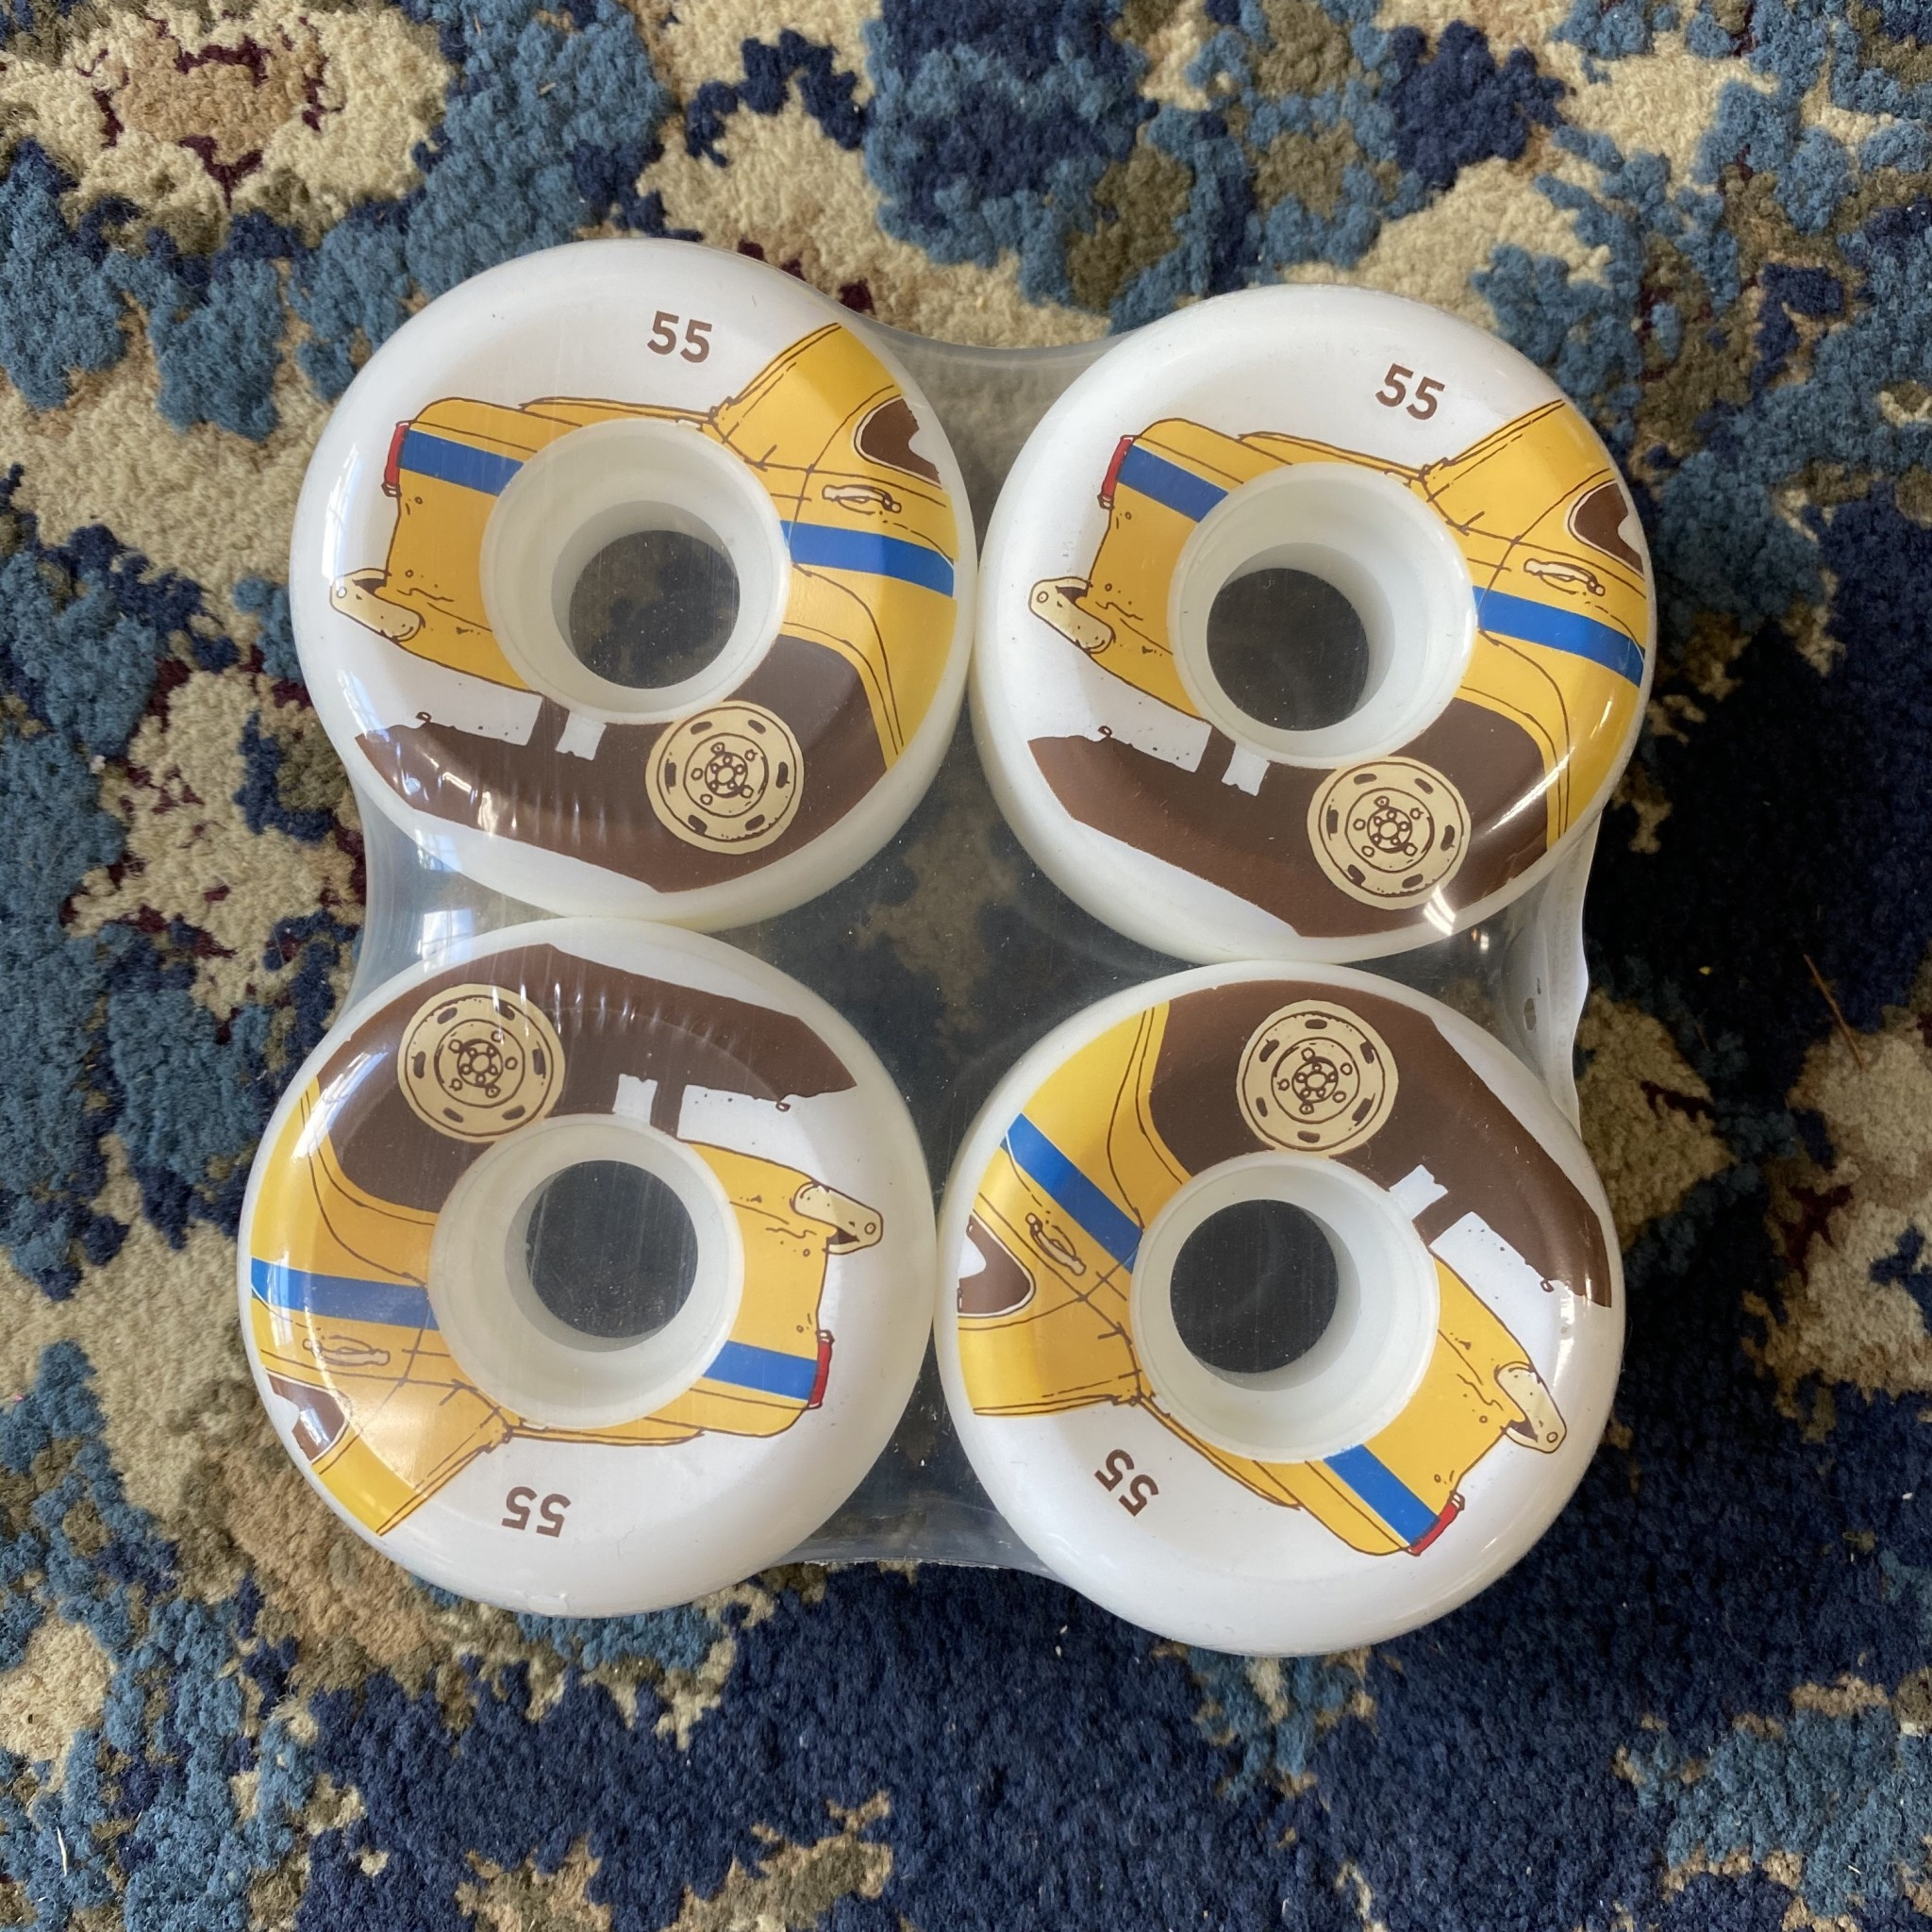 Chocolate Skateboards World Taxi Conical 55mm